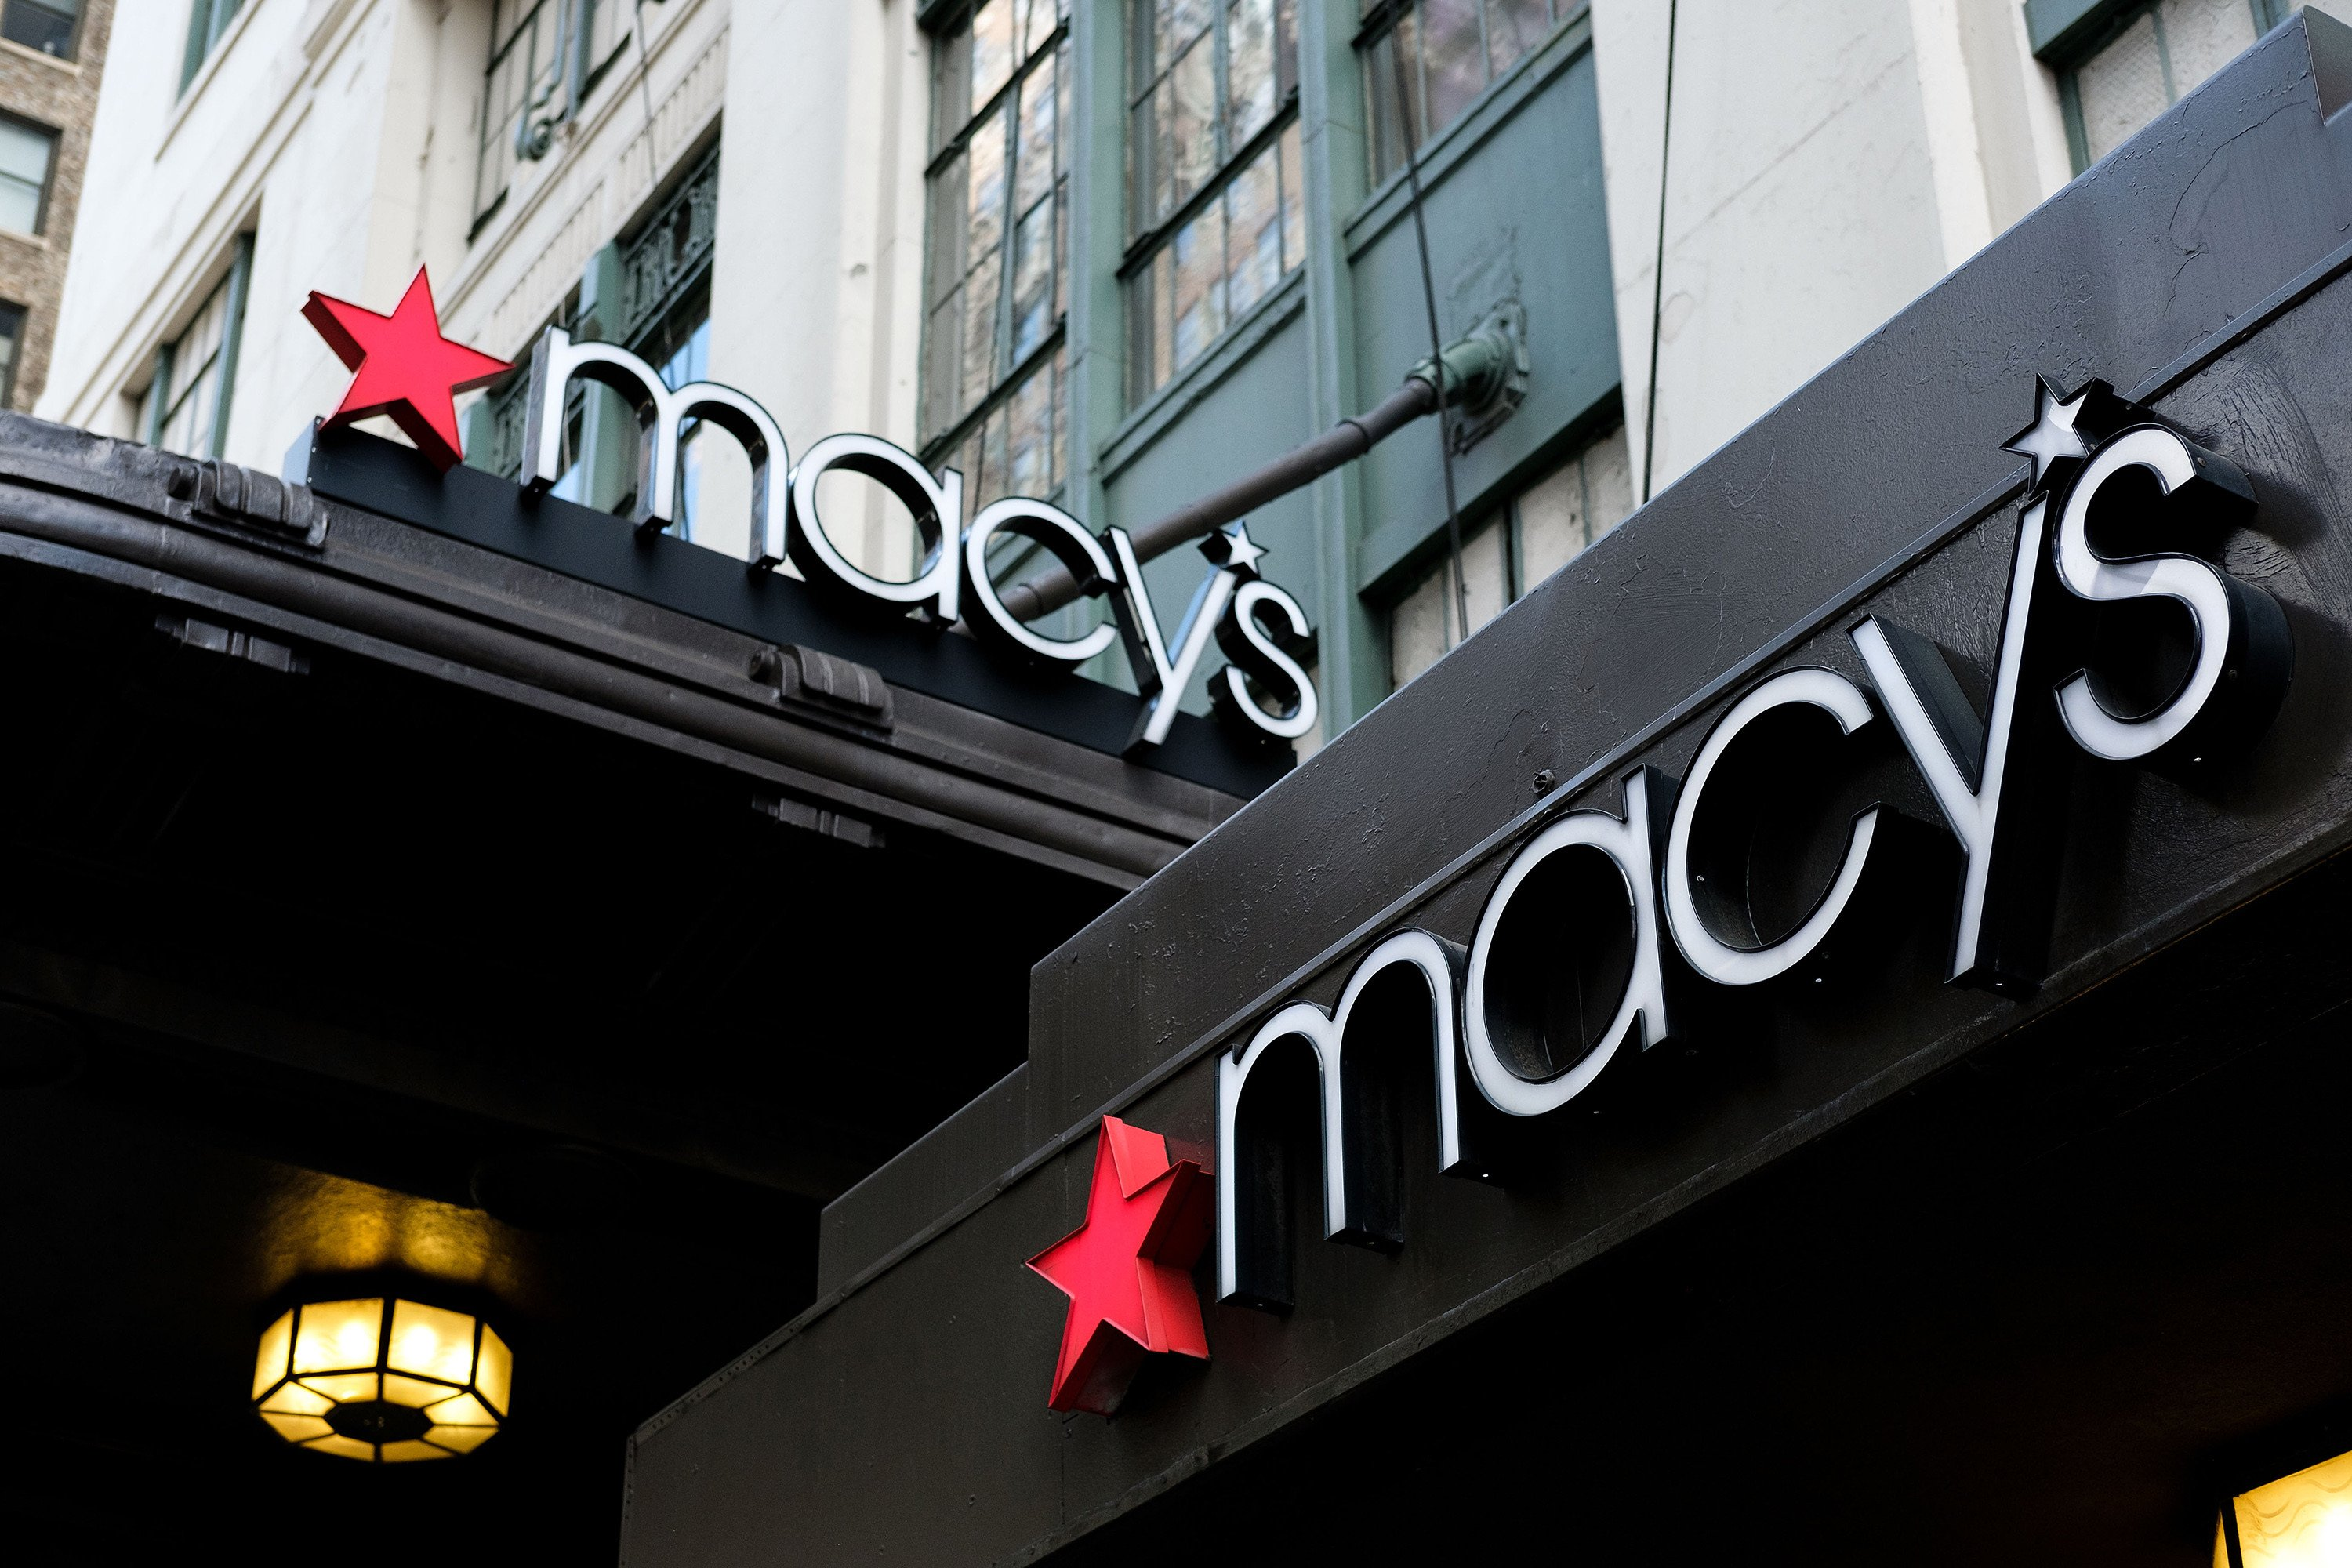 Macy's says sales getting a boost from its Backstage outlets